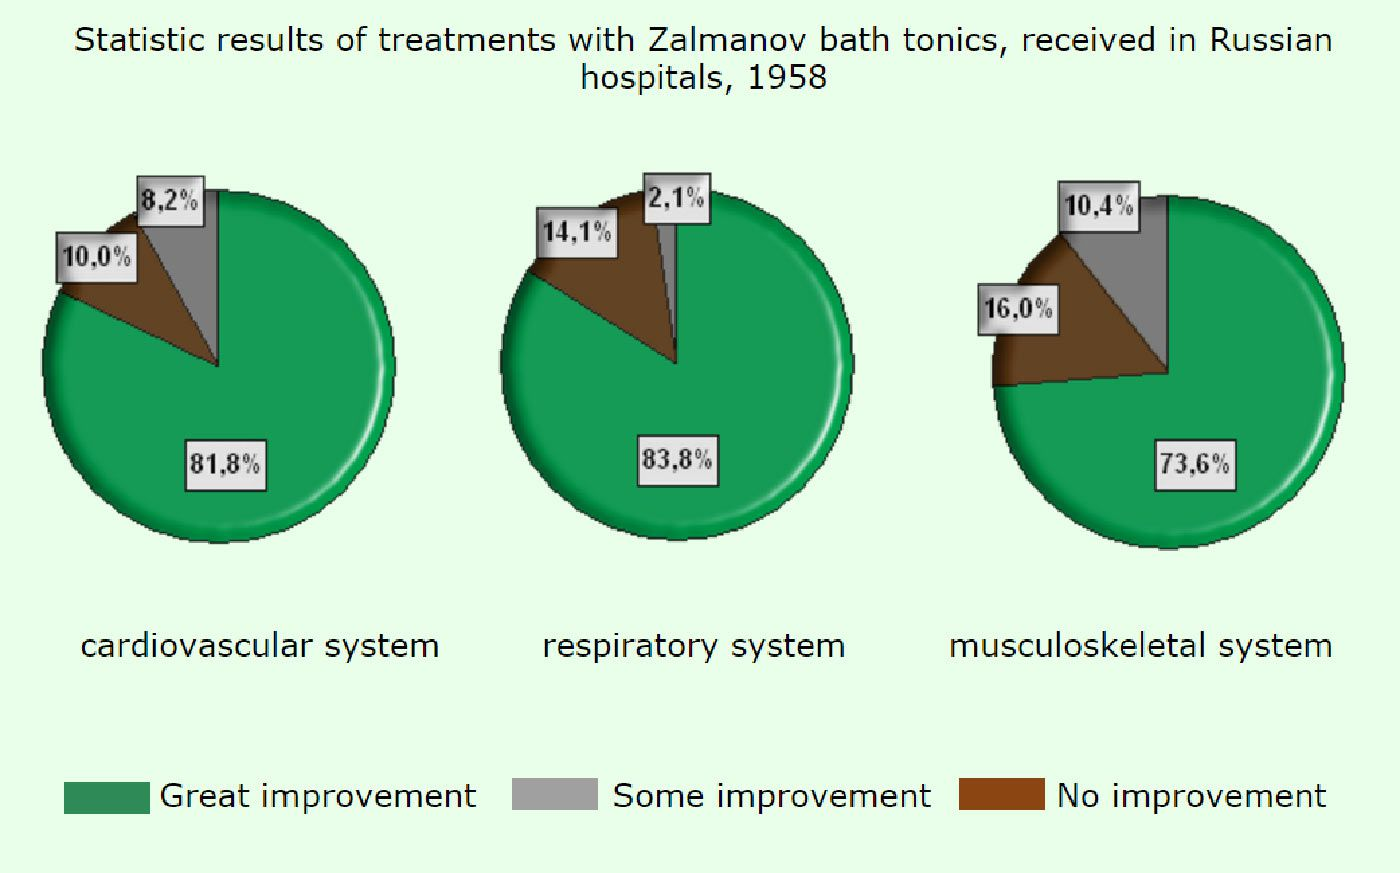 Statistics with Zalmanov method treatments